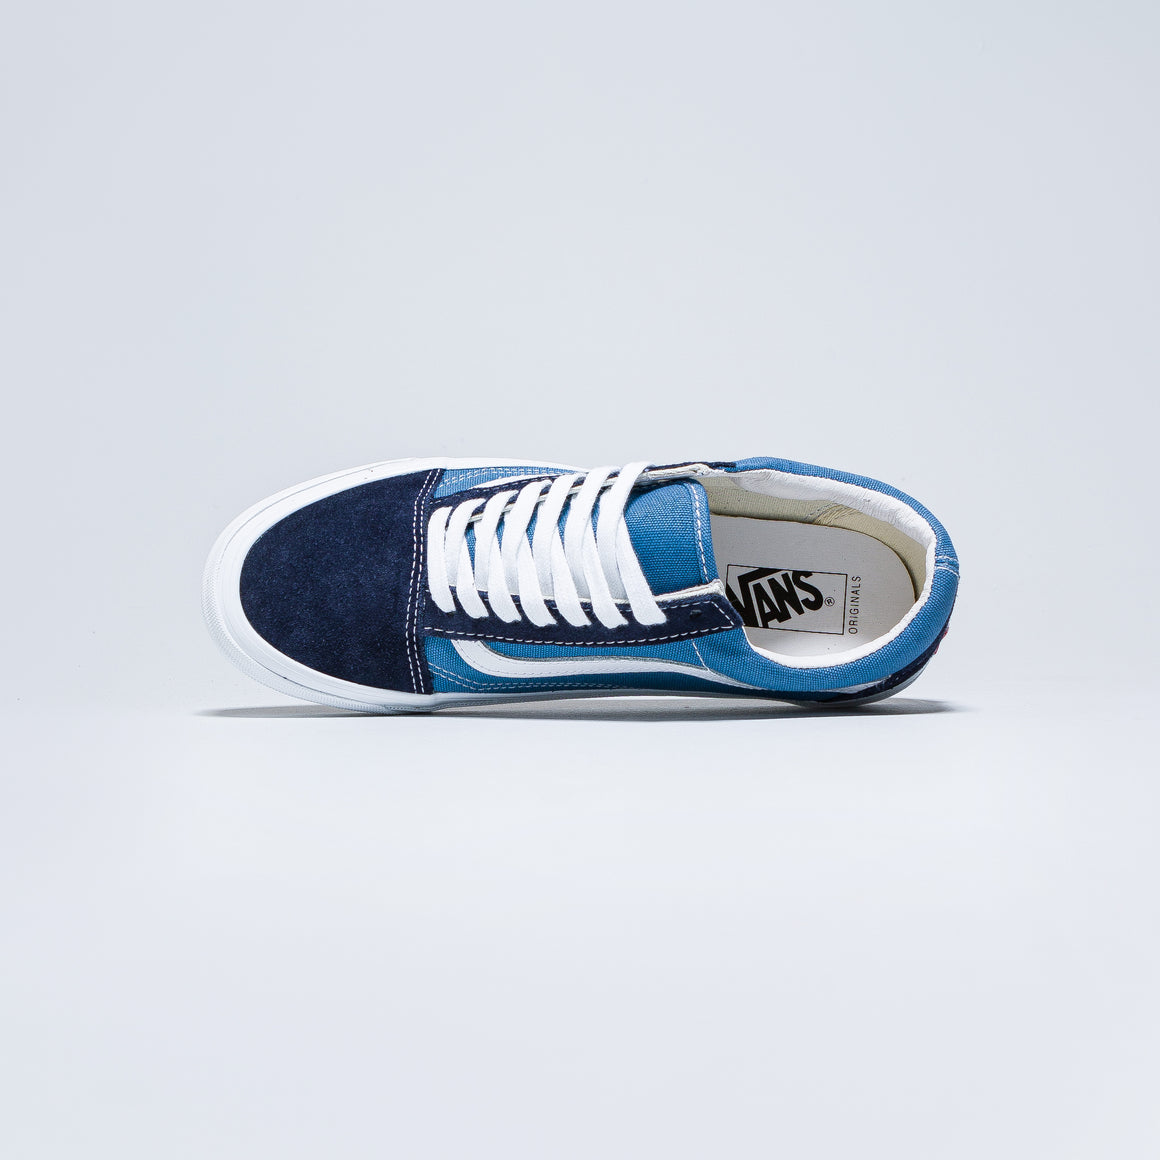 Vans - OG Old Skool LX - Navy - Up There